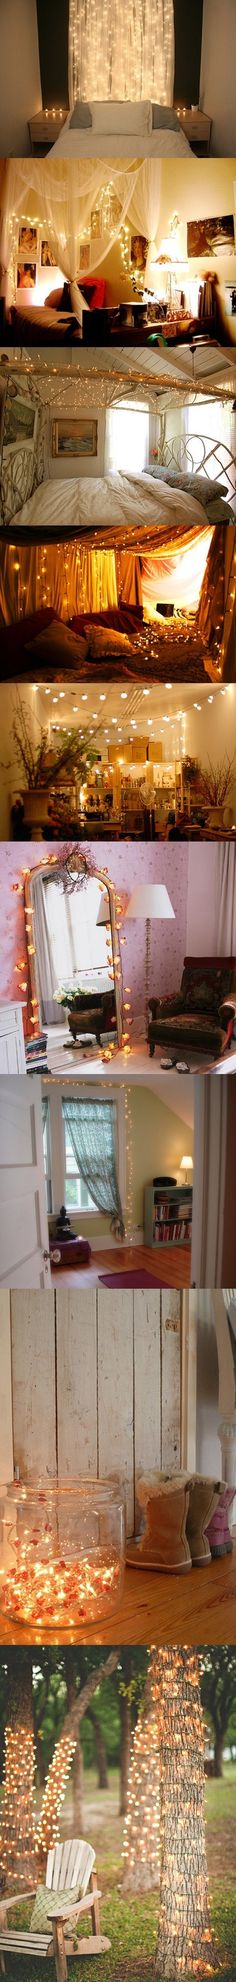 Fairy Lights Decorating Ideas @ DIY Home Design - lots of ideas for using string lights to create atmosphere. I'm in love with fairy lights My New Room, My Room, Dorm Room, Diy Casa, Deco Design, Home And Deco, Fairy Lights, Xmas Lights, Holiday Lights